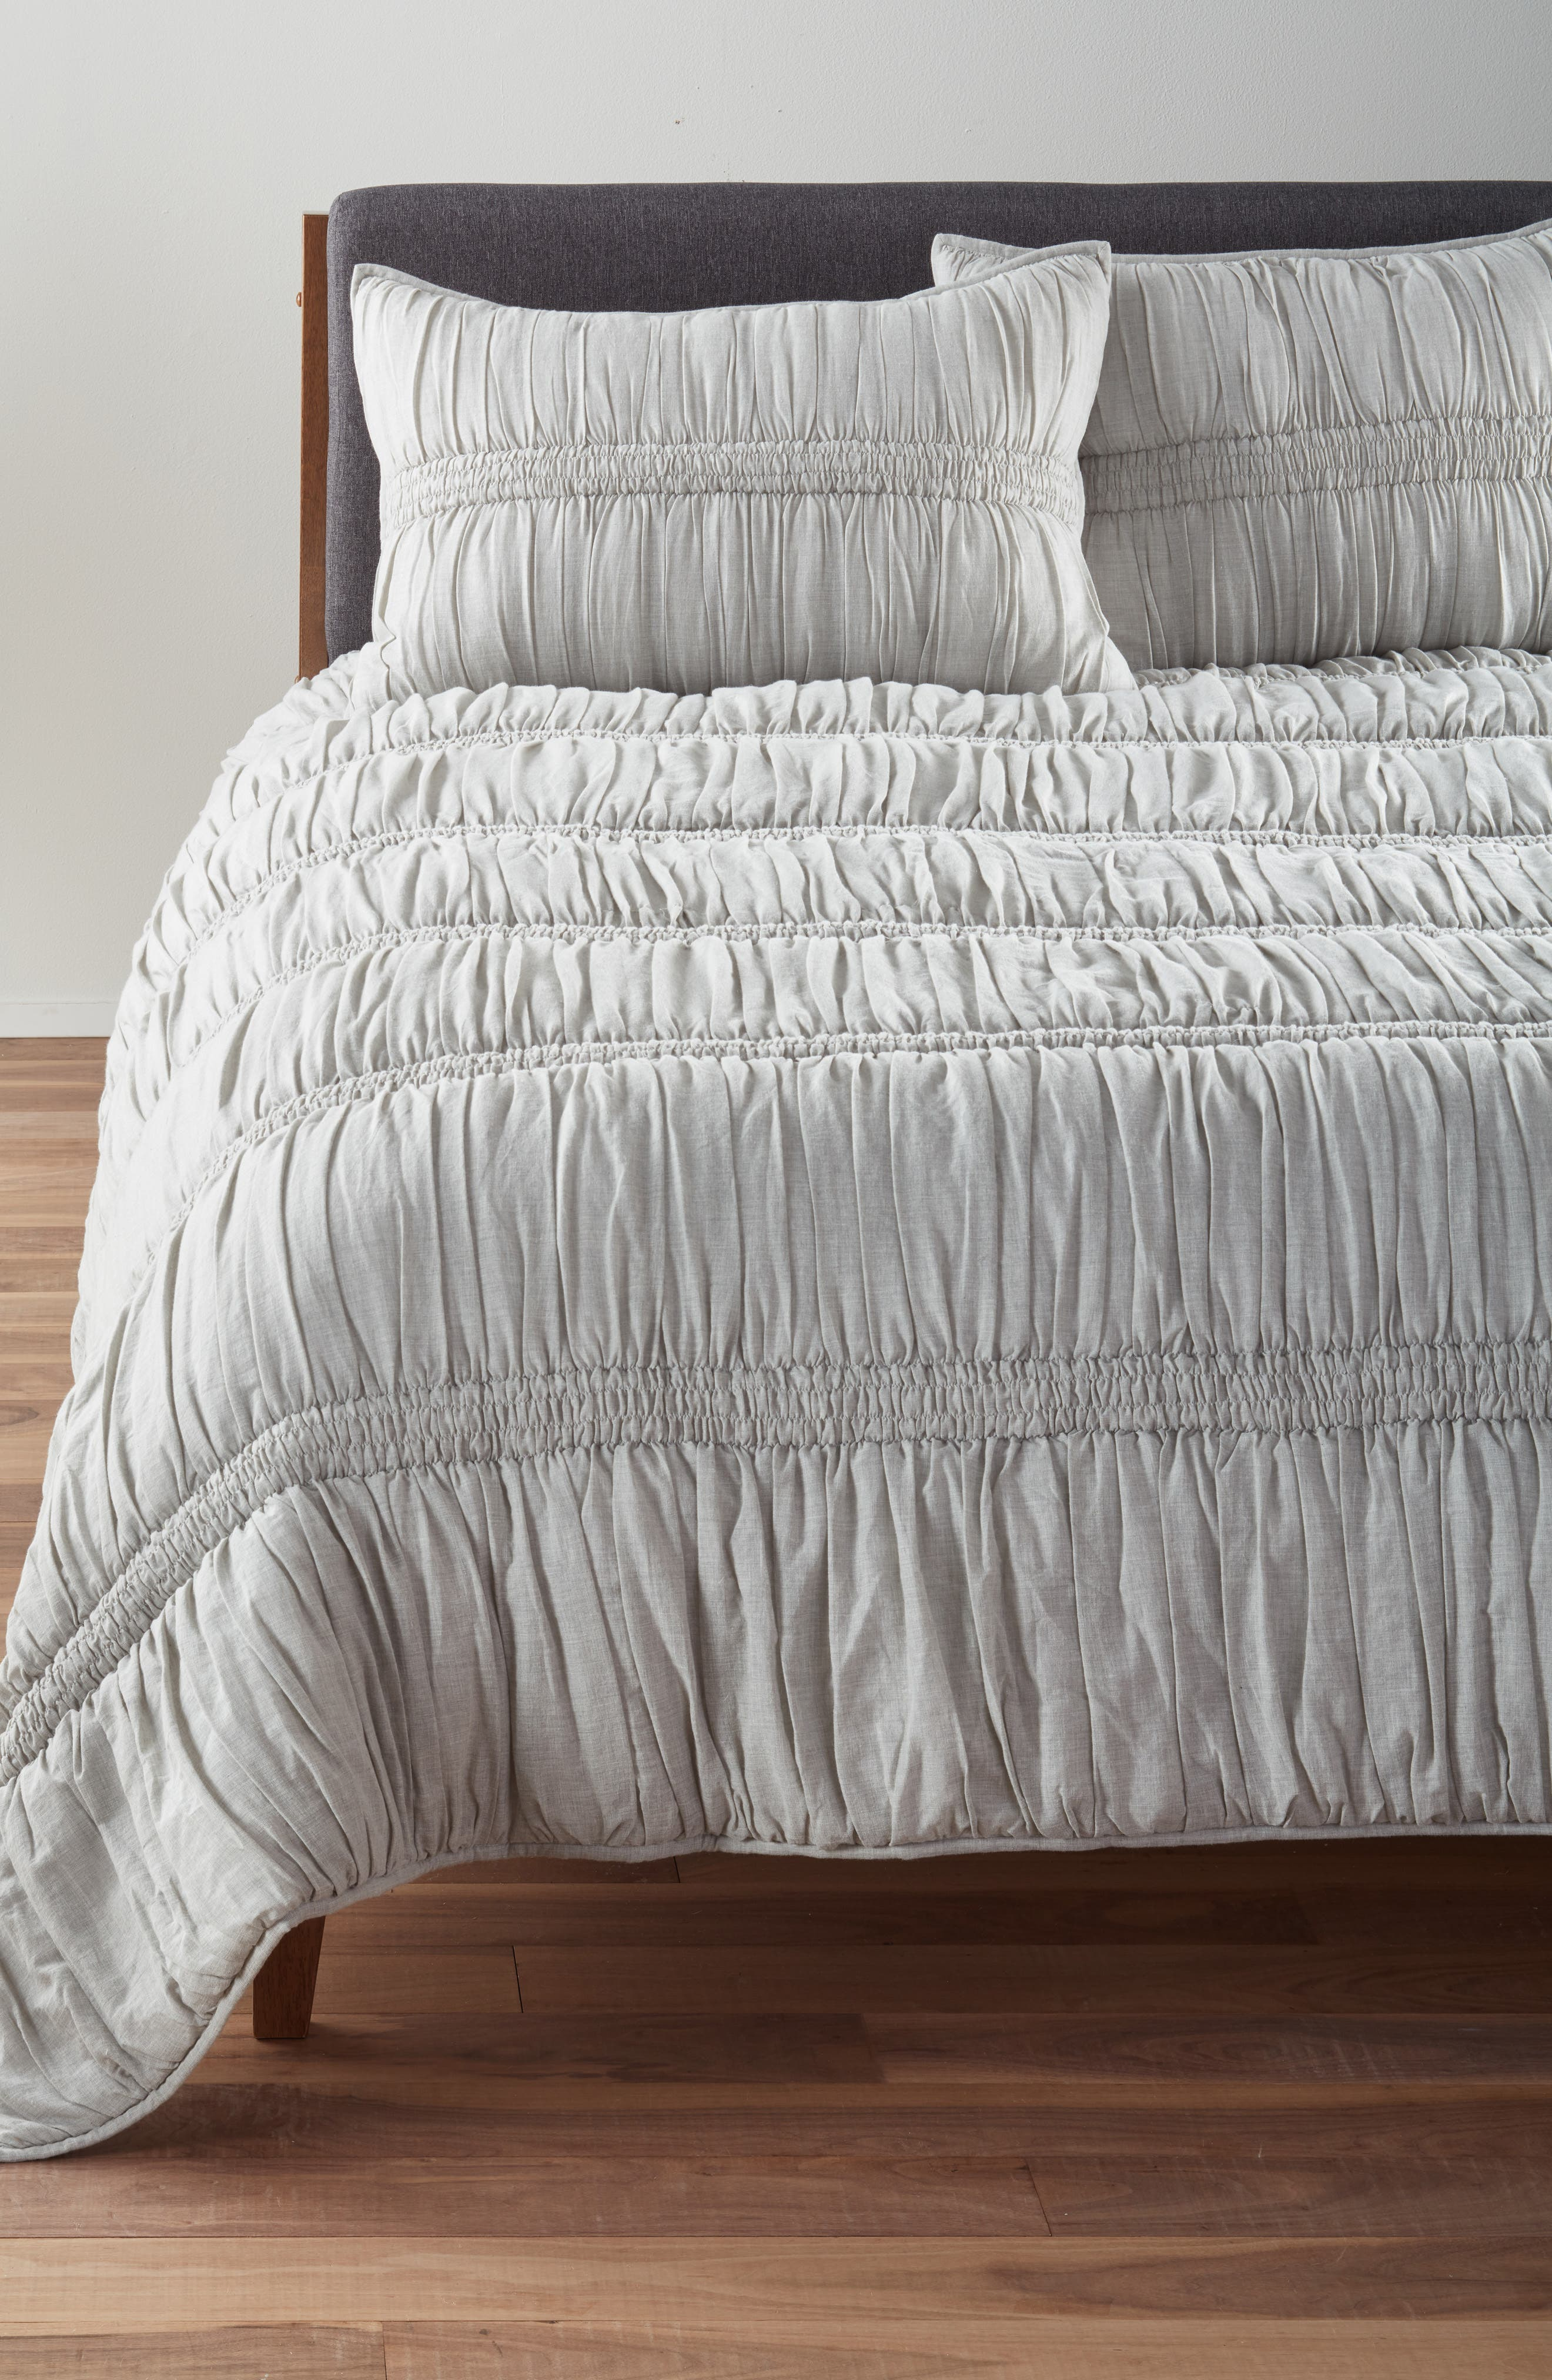 Heathered Ruched Comforter,                             Main thumbnail 1, color,                             020